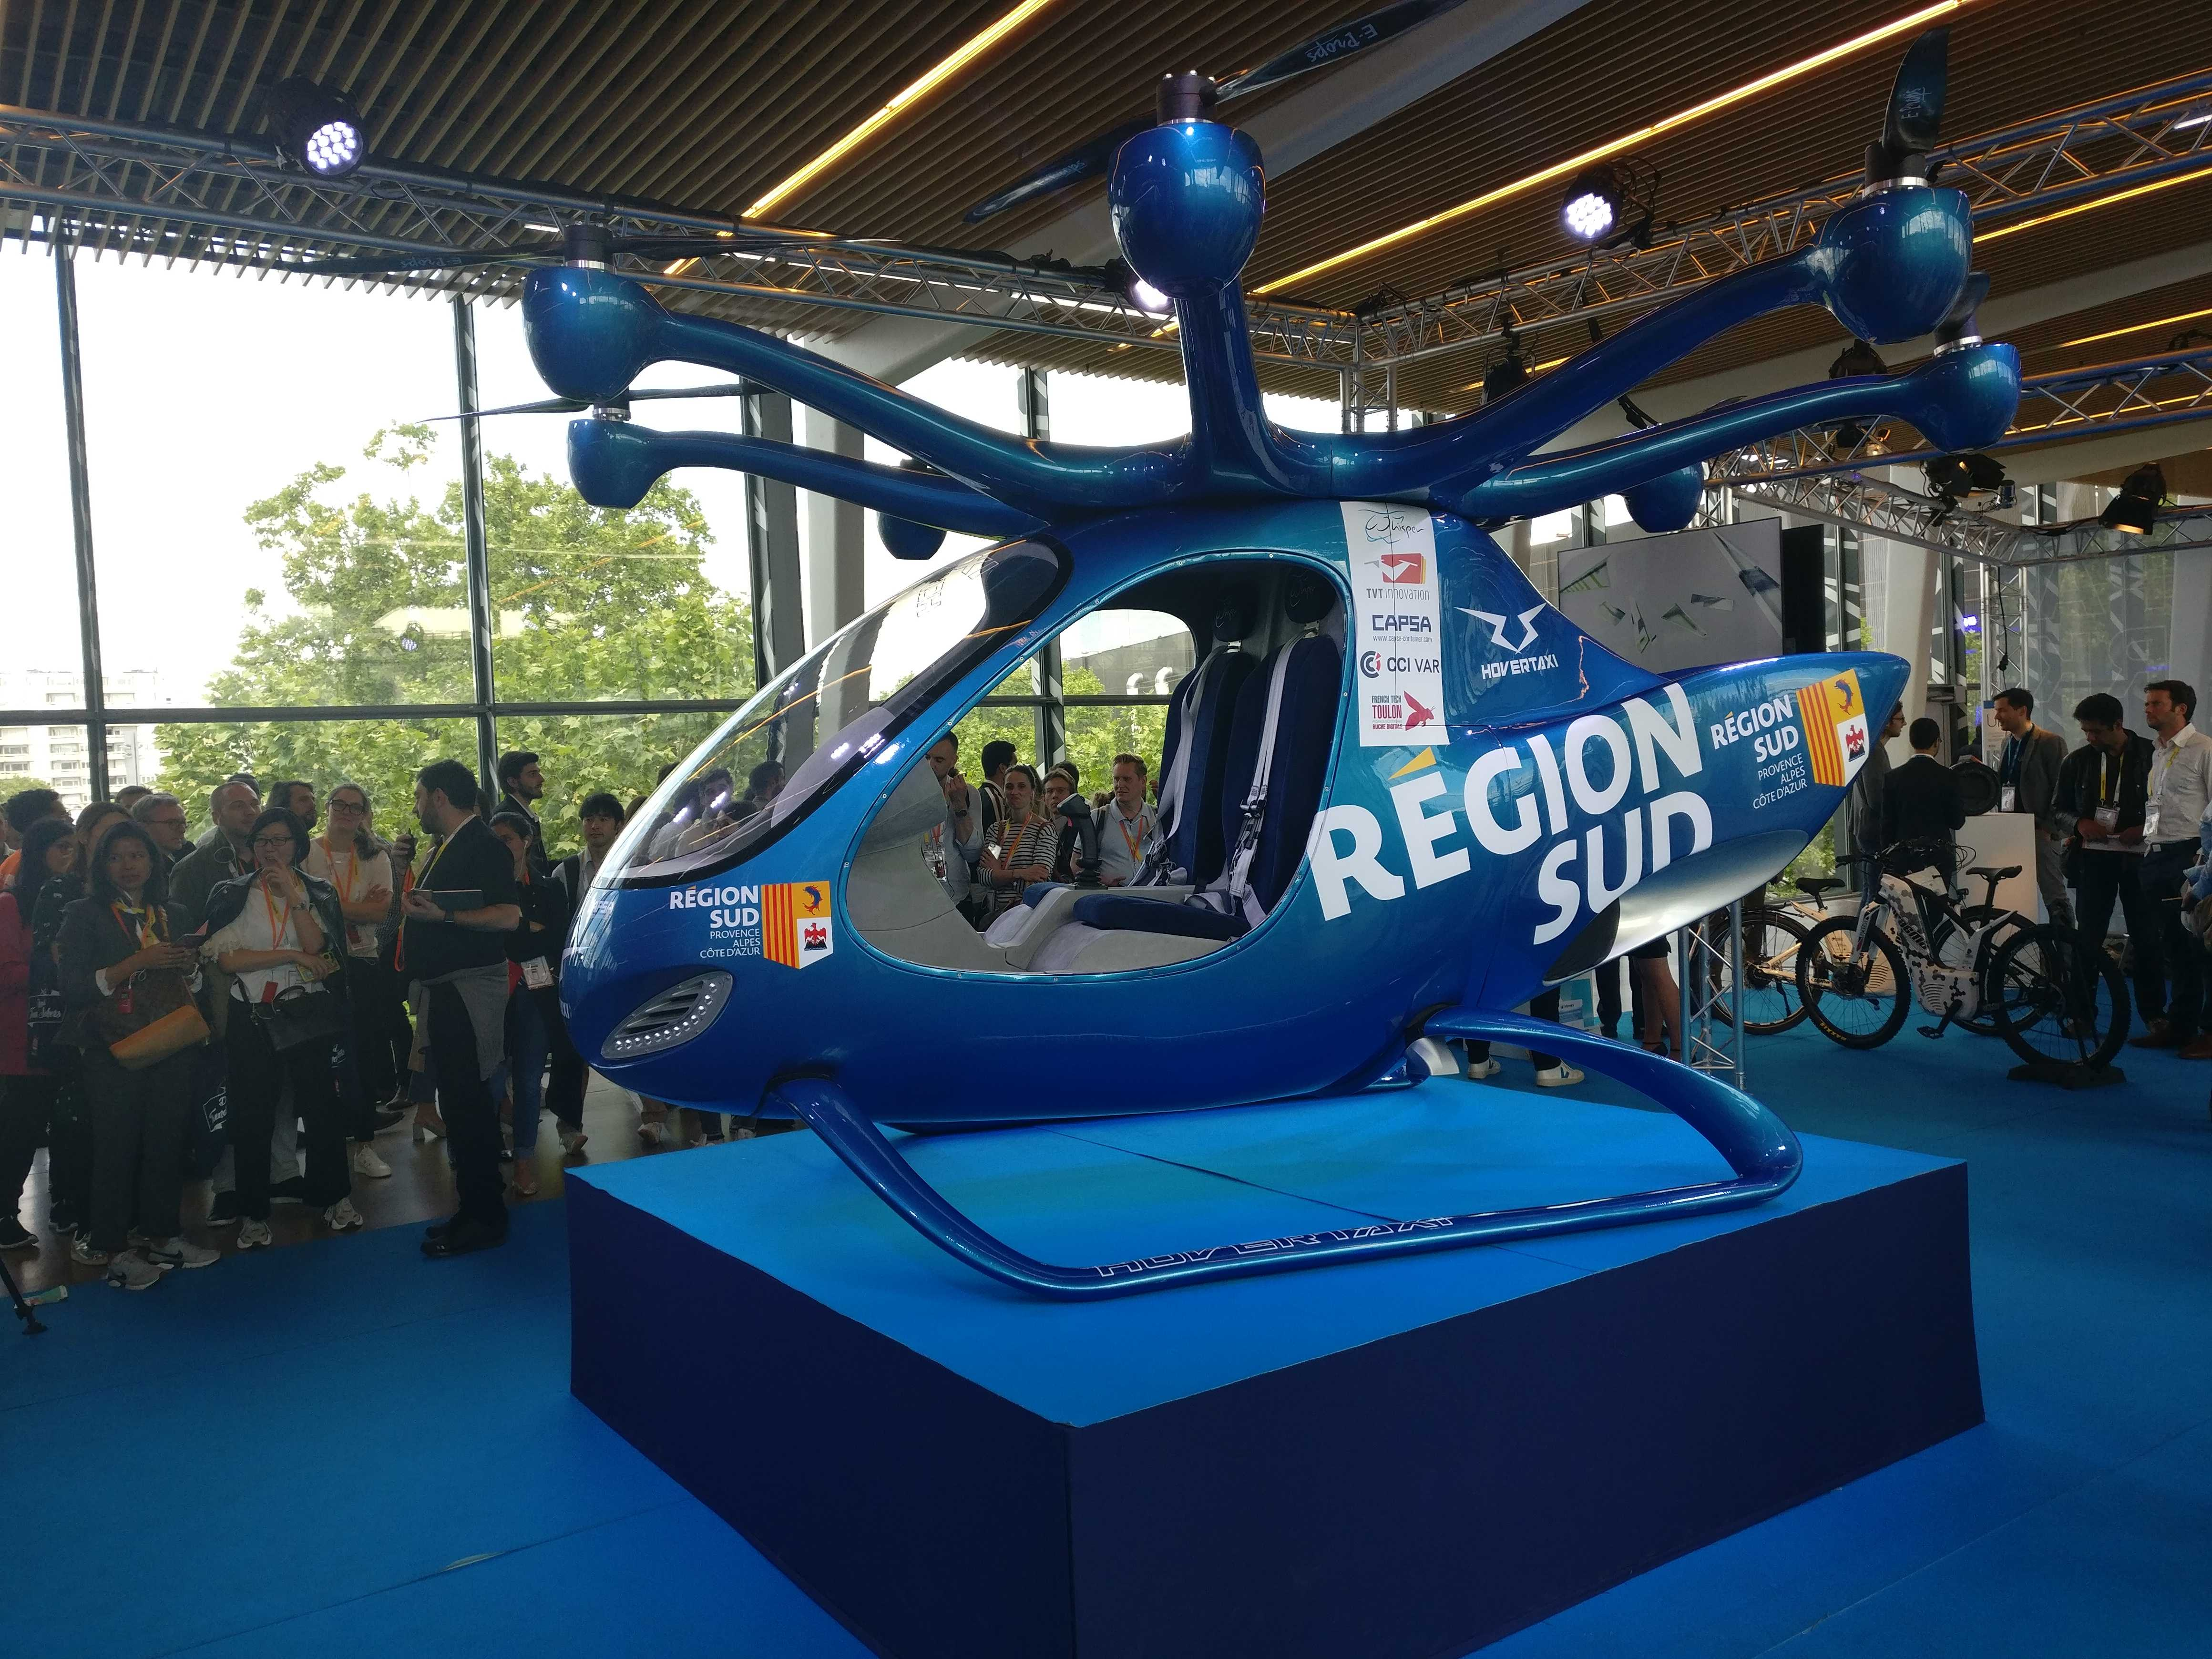 From air taxis to the Batmobile: The coolest and weirdest things at France's massive tech expo